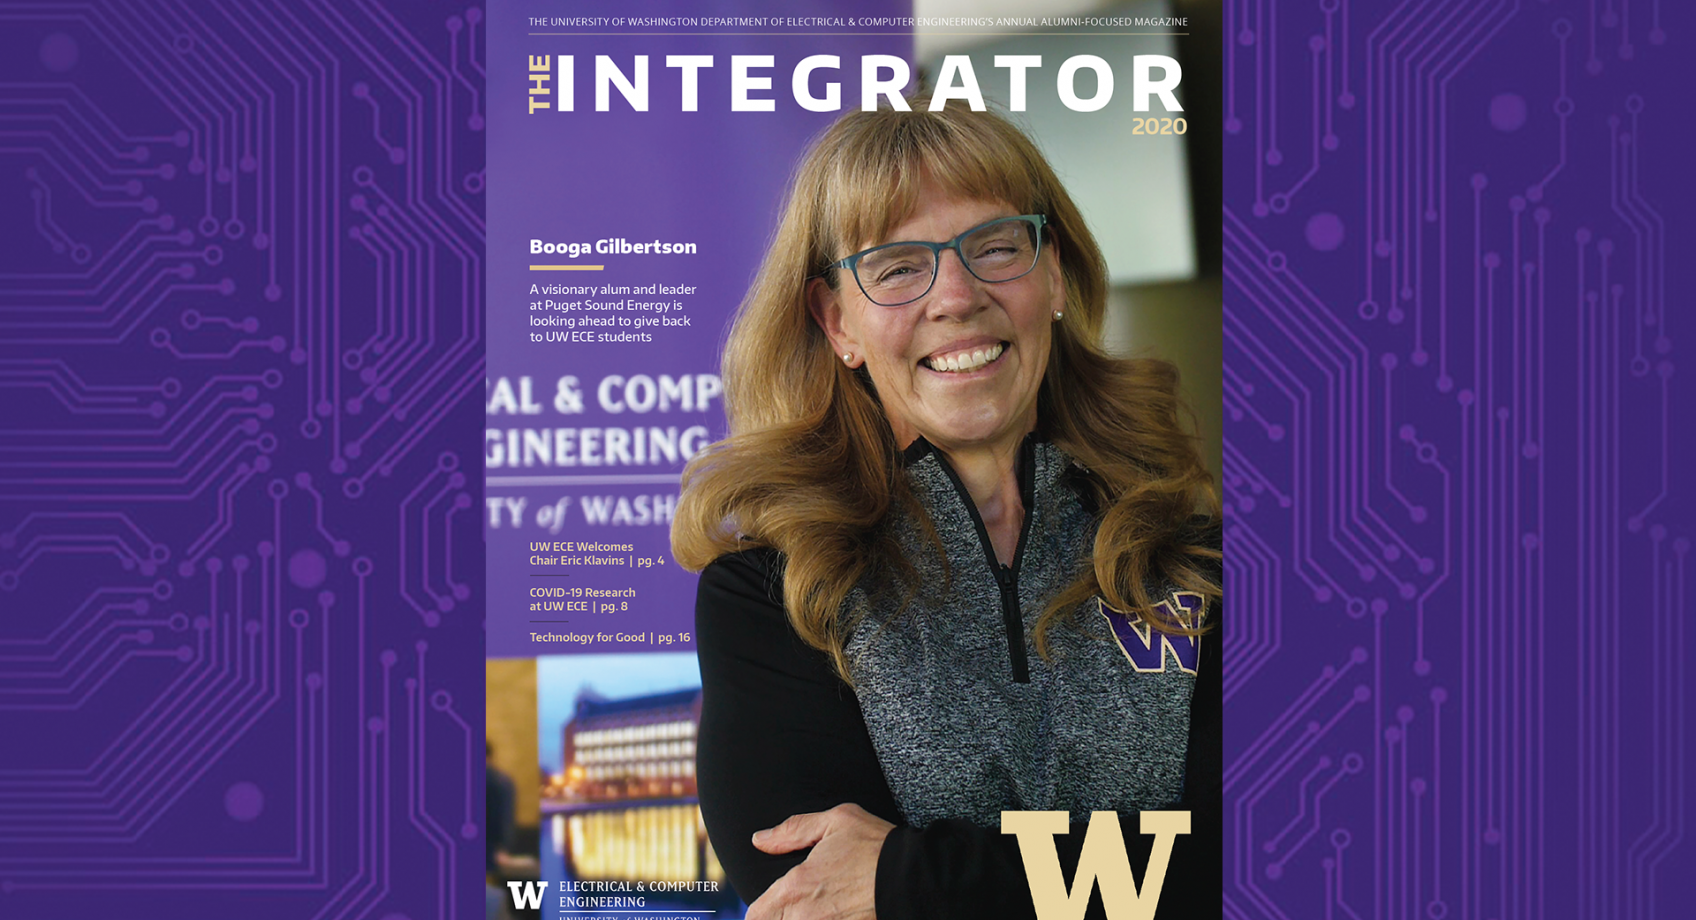 The Integrator 2020 is now available! Banner